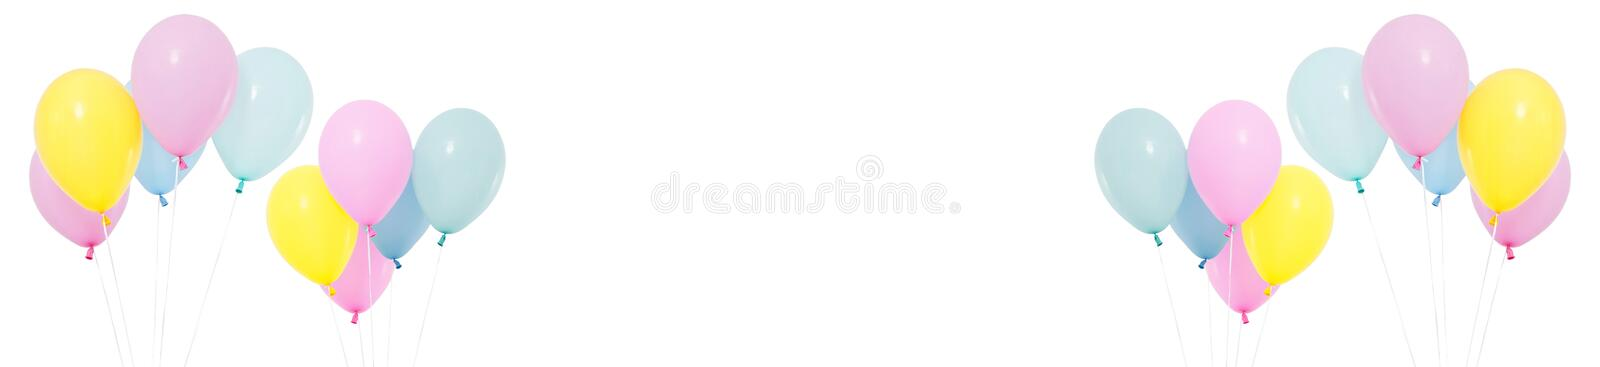 Set flying balloon on white background isolated, holidays and birthday concept royalty free stock photo